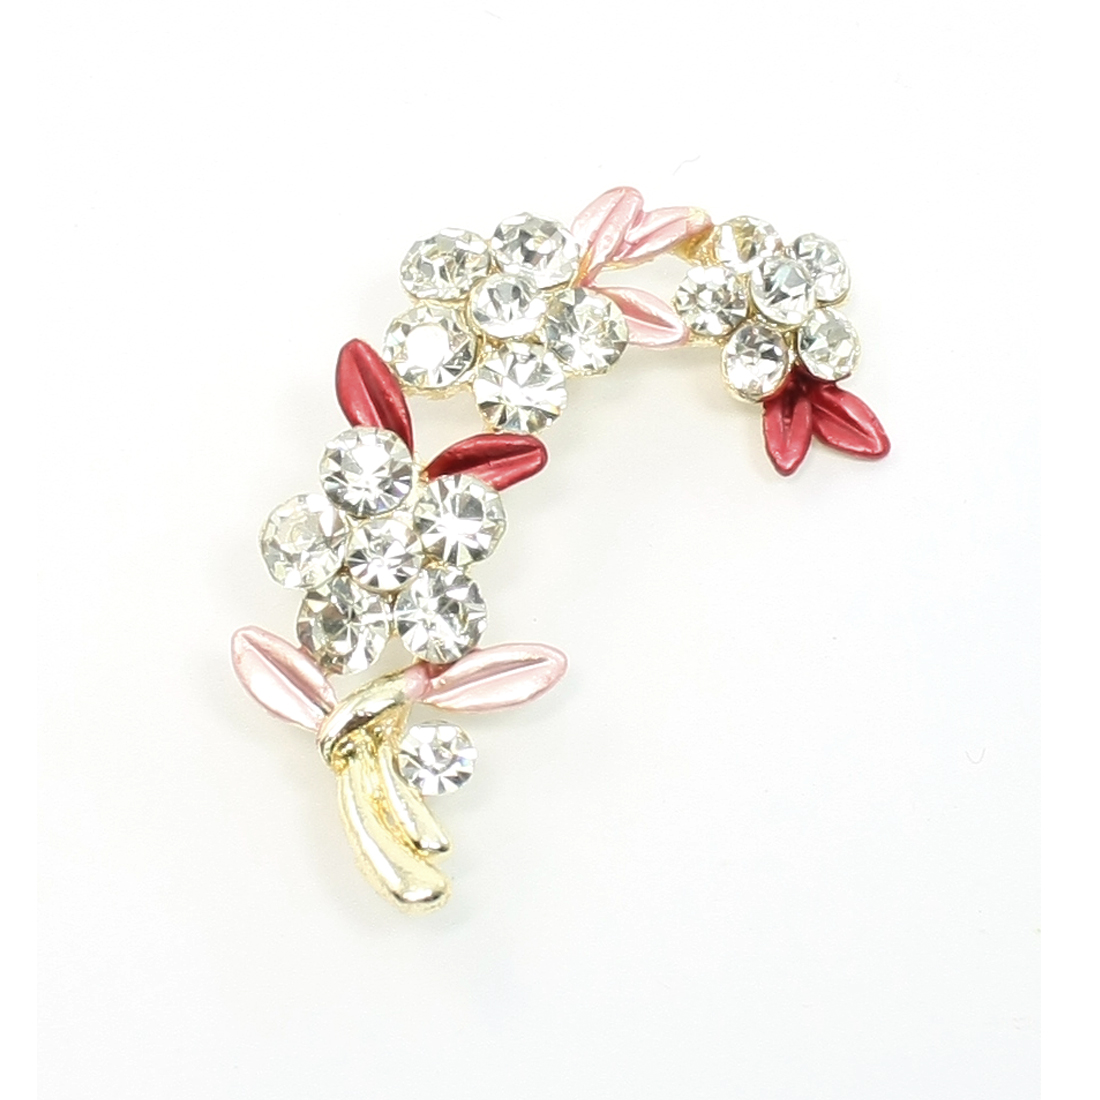 Woman Bling Rhinestone Flower Safety Pin Brooch Pink Red